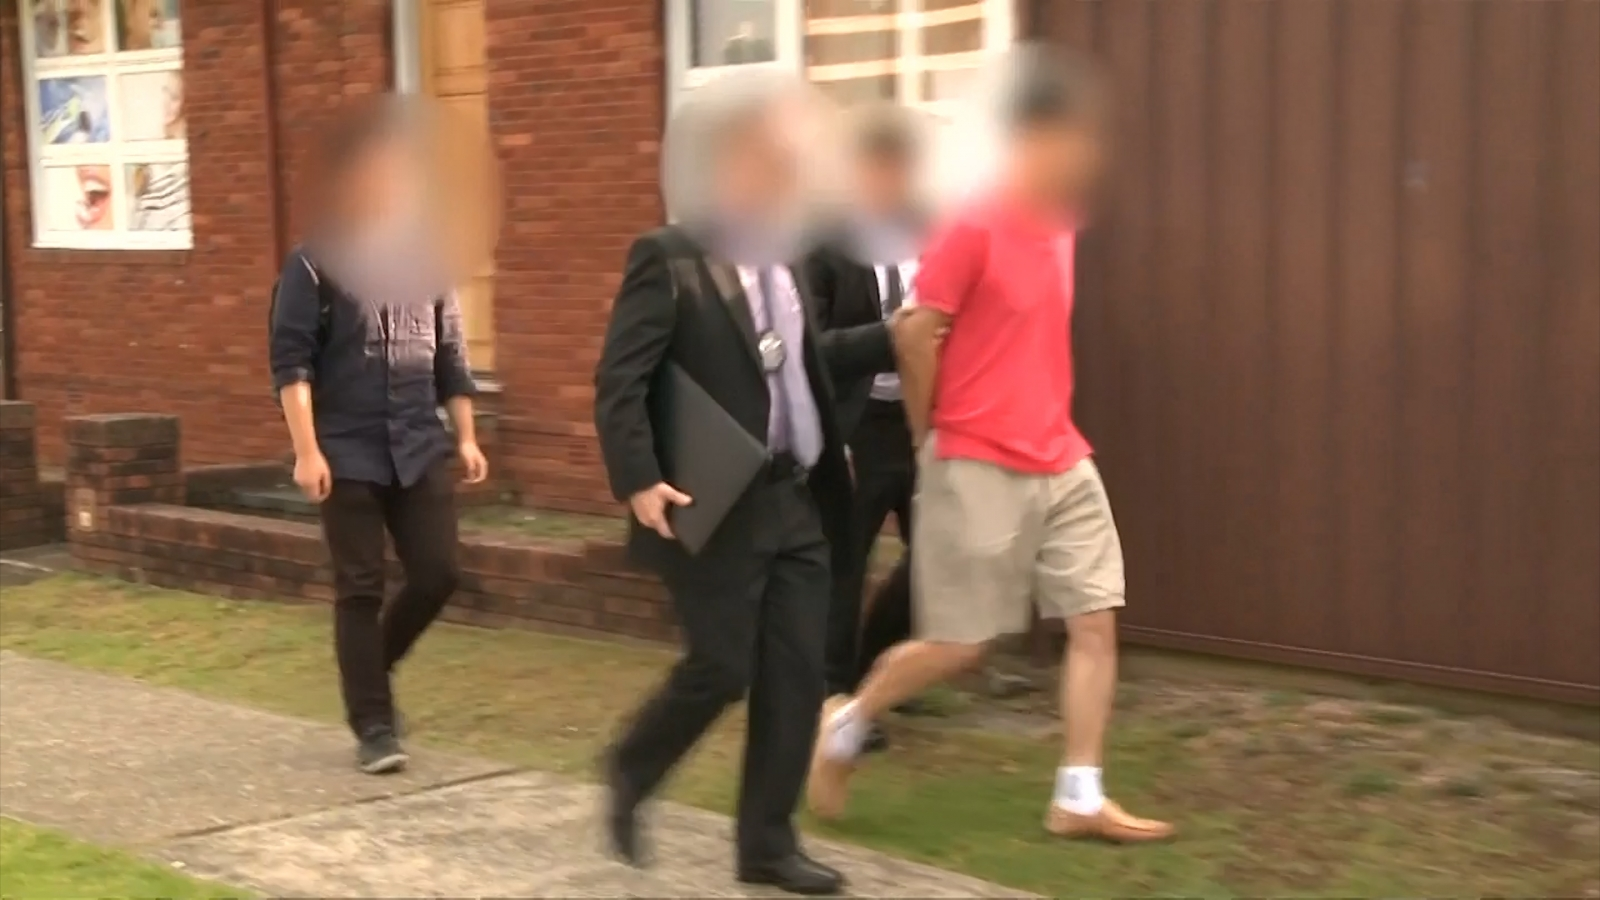 Sydney man arrested for being 'loyal agent' of North Korea